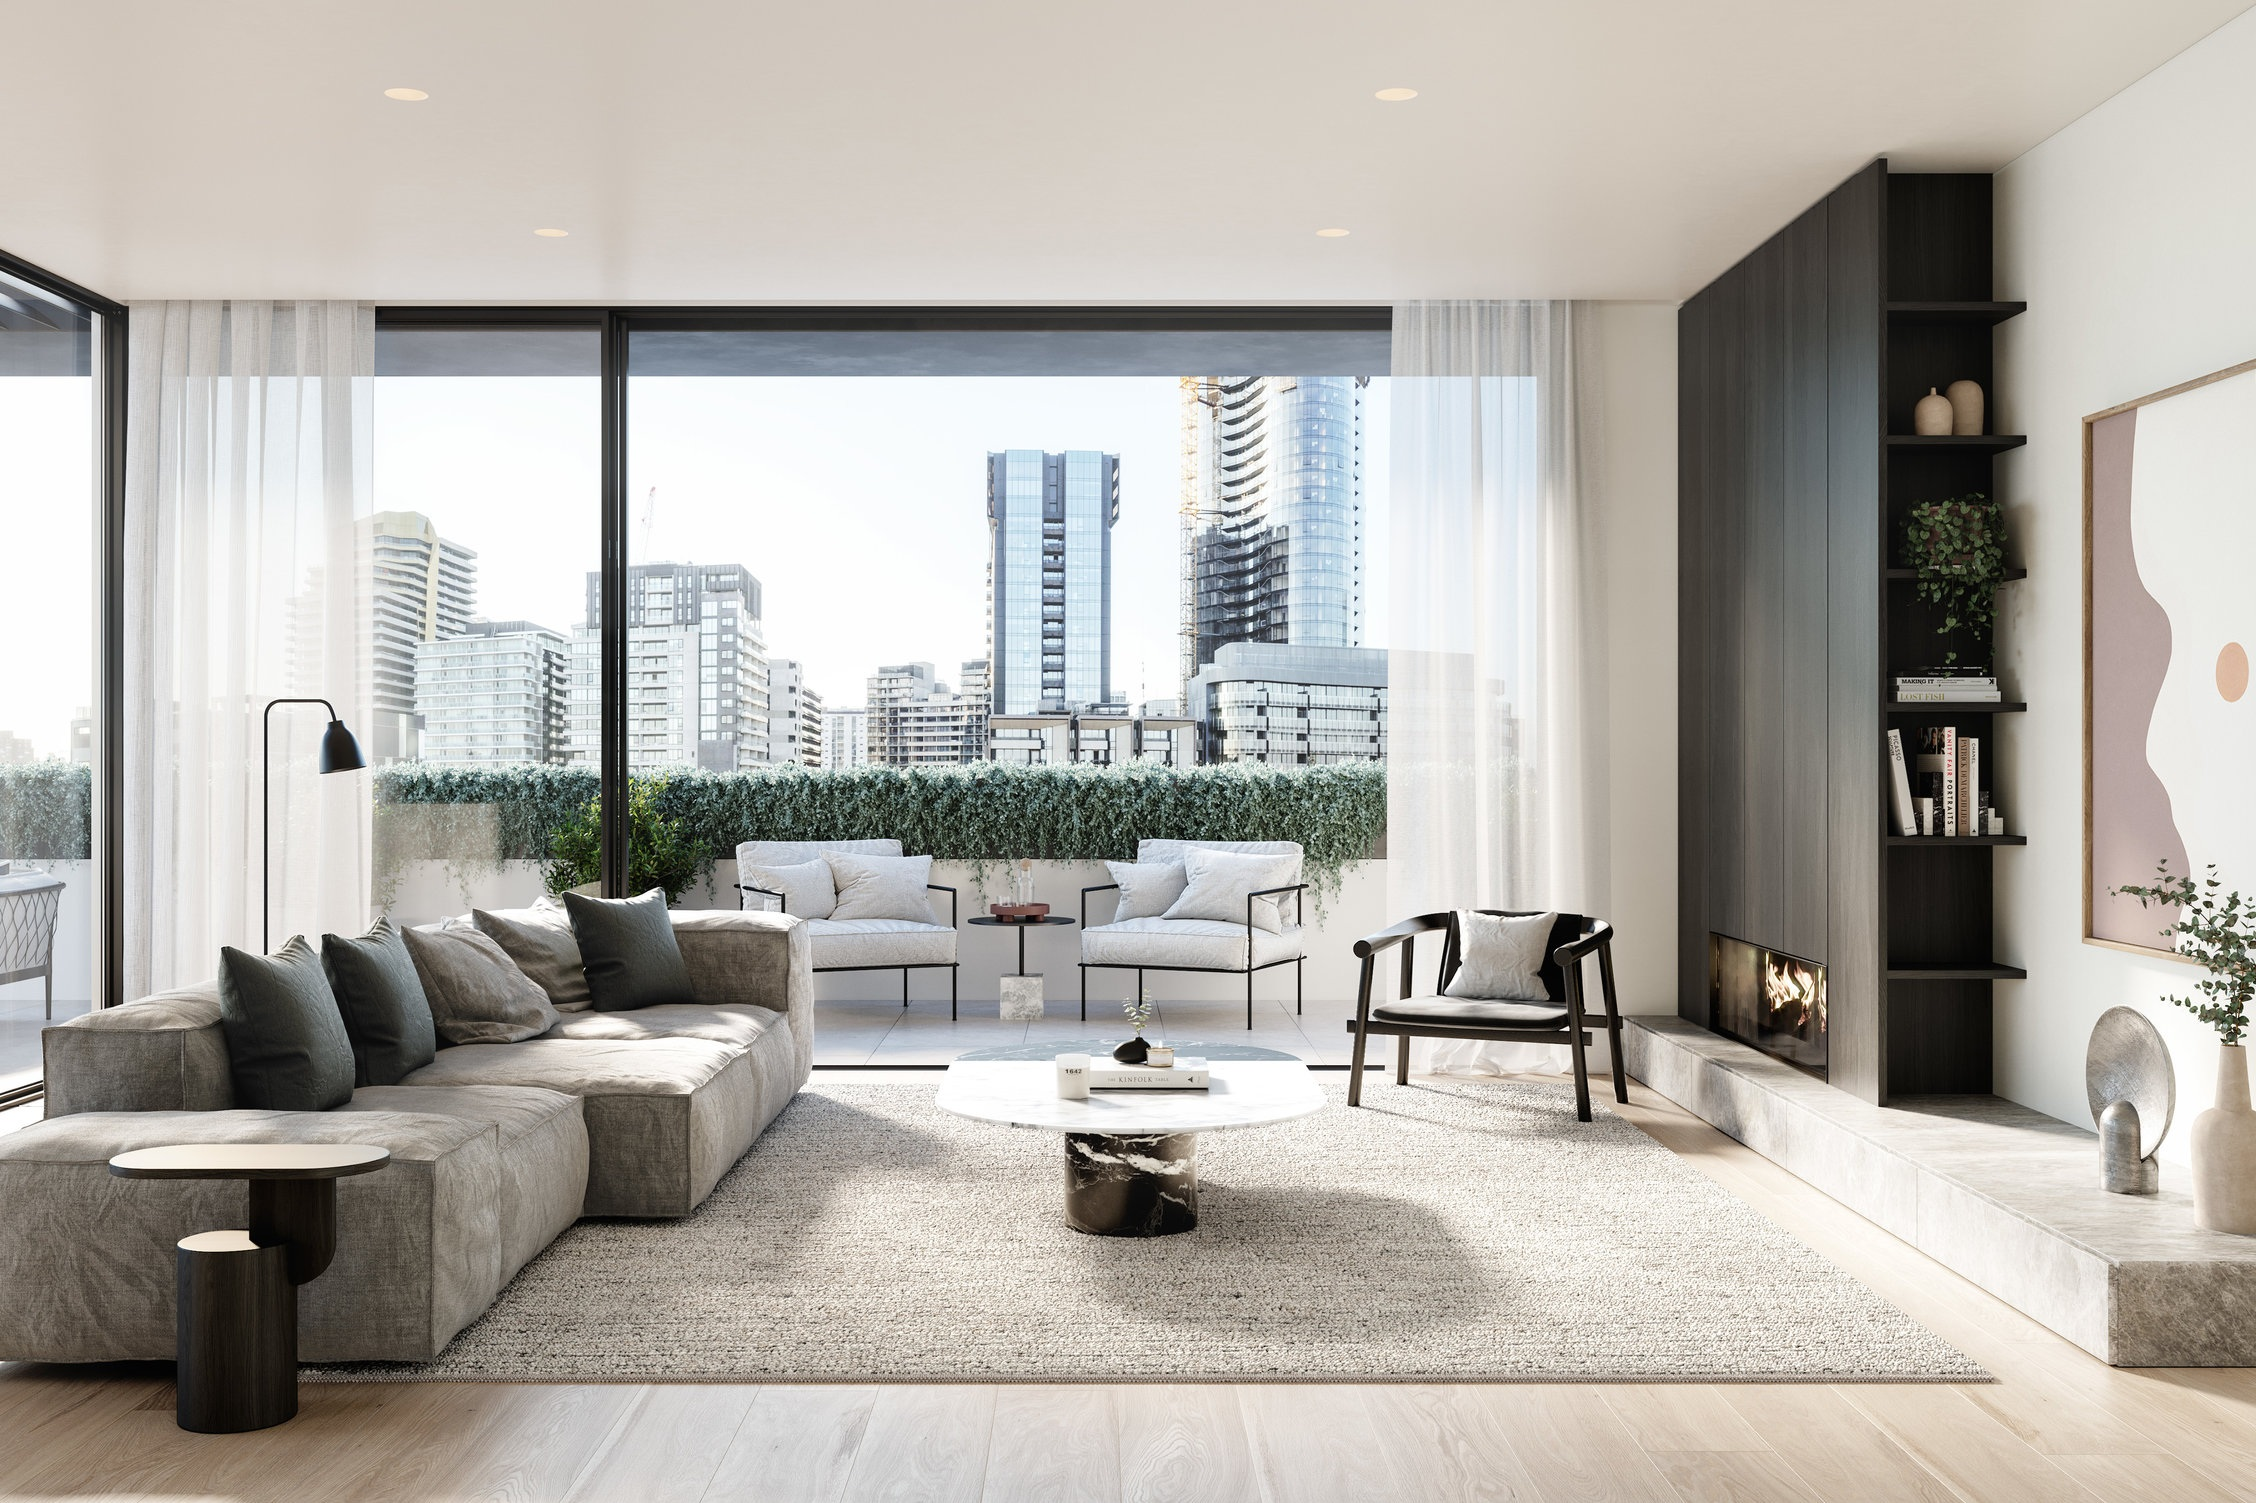 S06_16-18_Chambers_South_Yarra_INT_Penthouse_Living.jpg